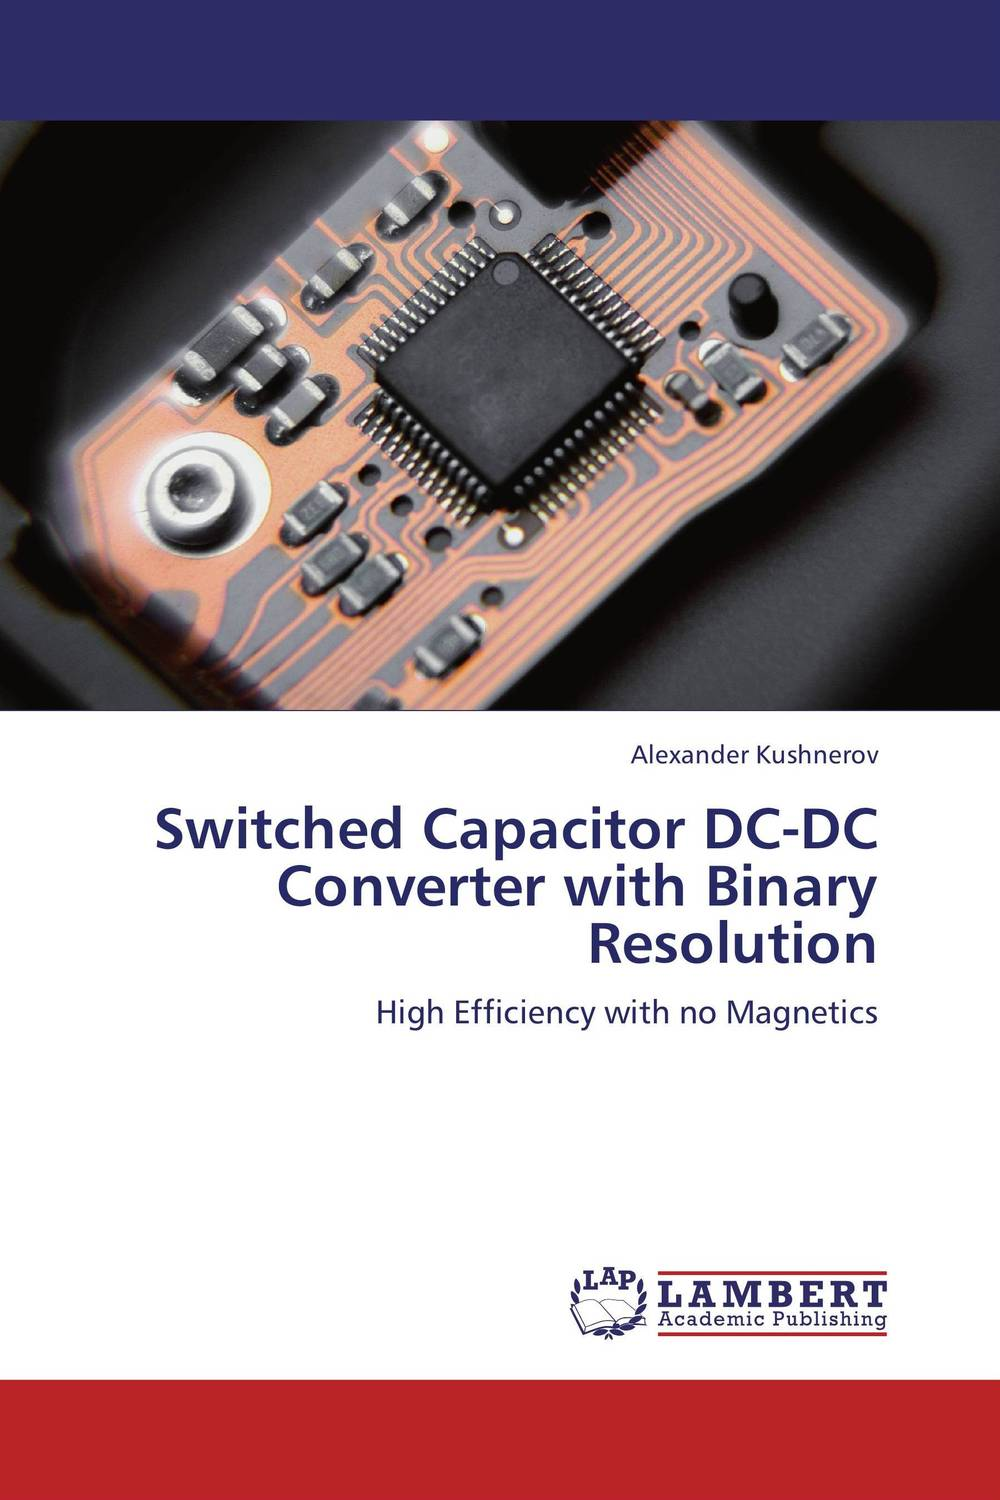 Switched Capacitor DC-DC Converter with Binary Resolution